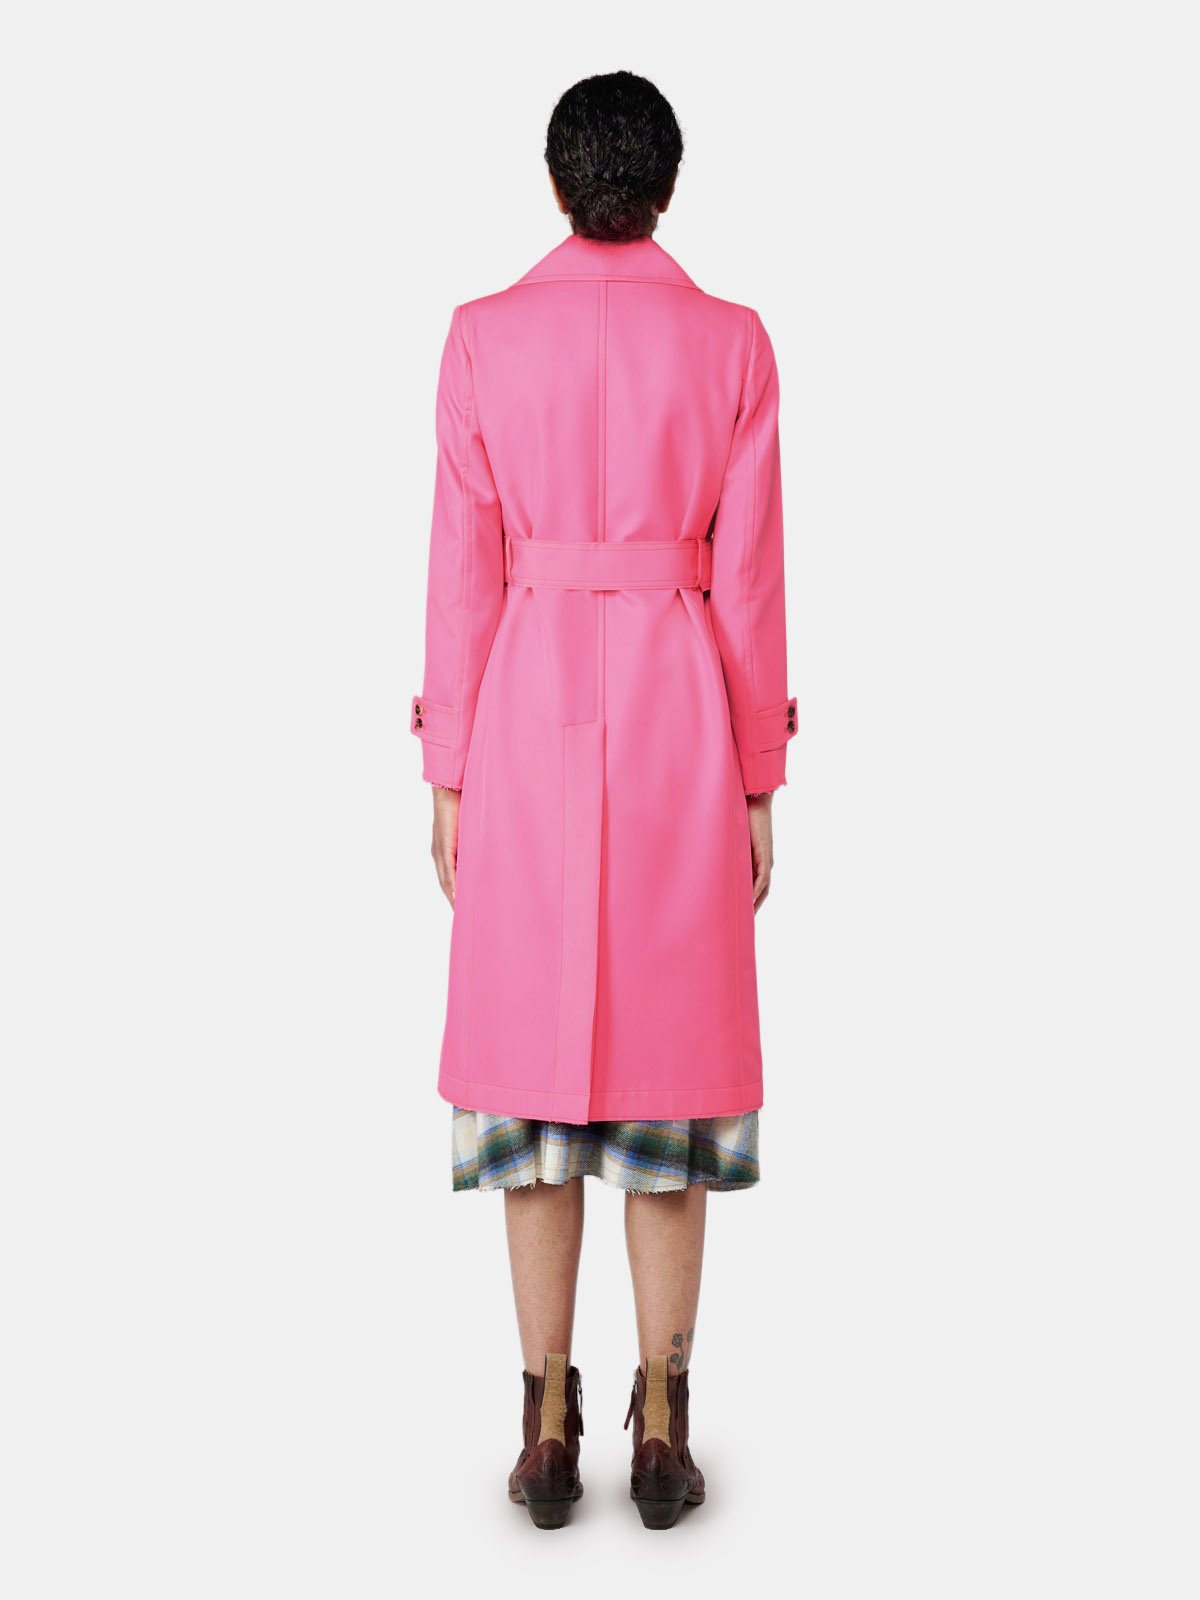 Golden Goose - Abigail trench coat in fuchsia fabric with pins in